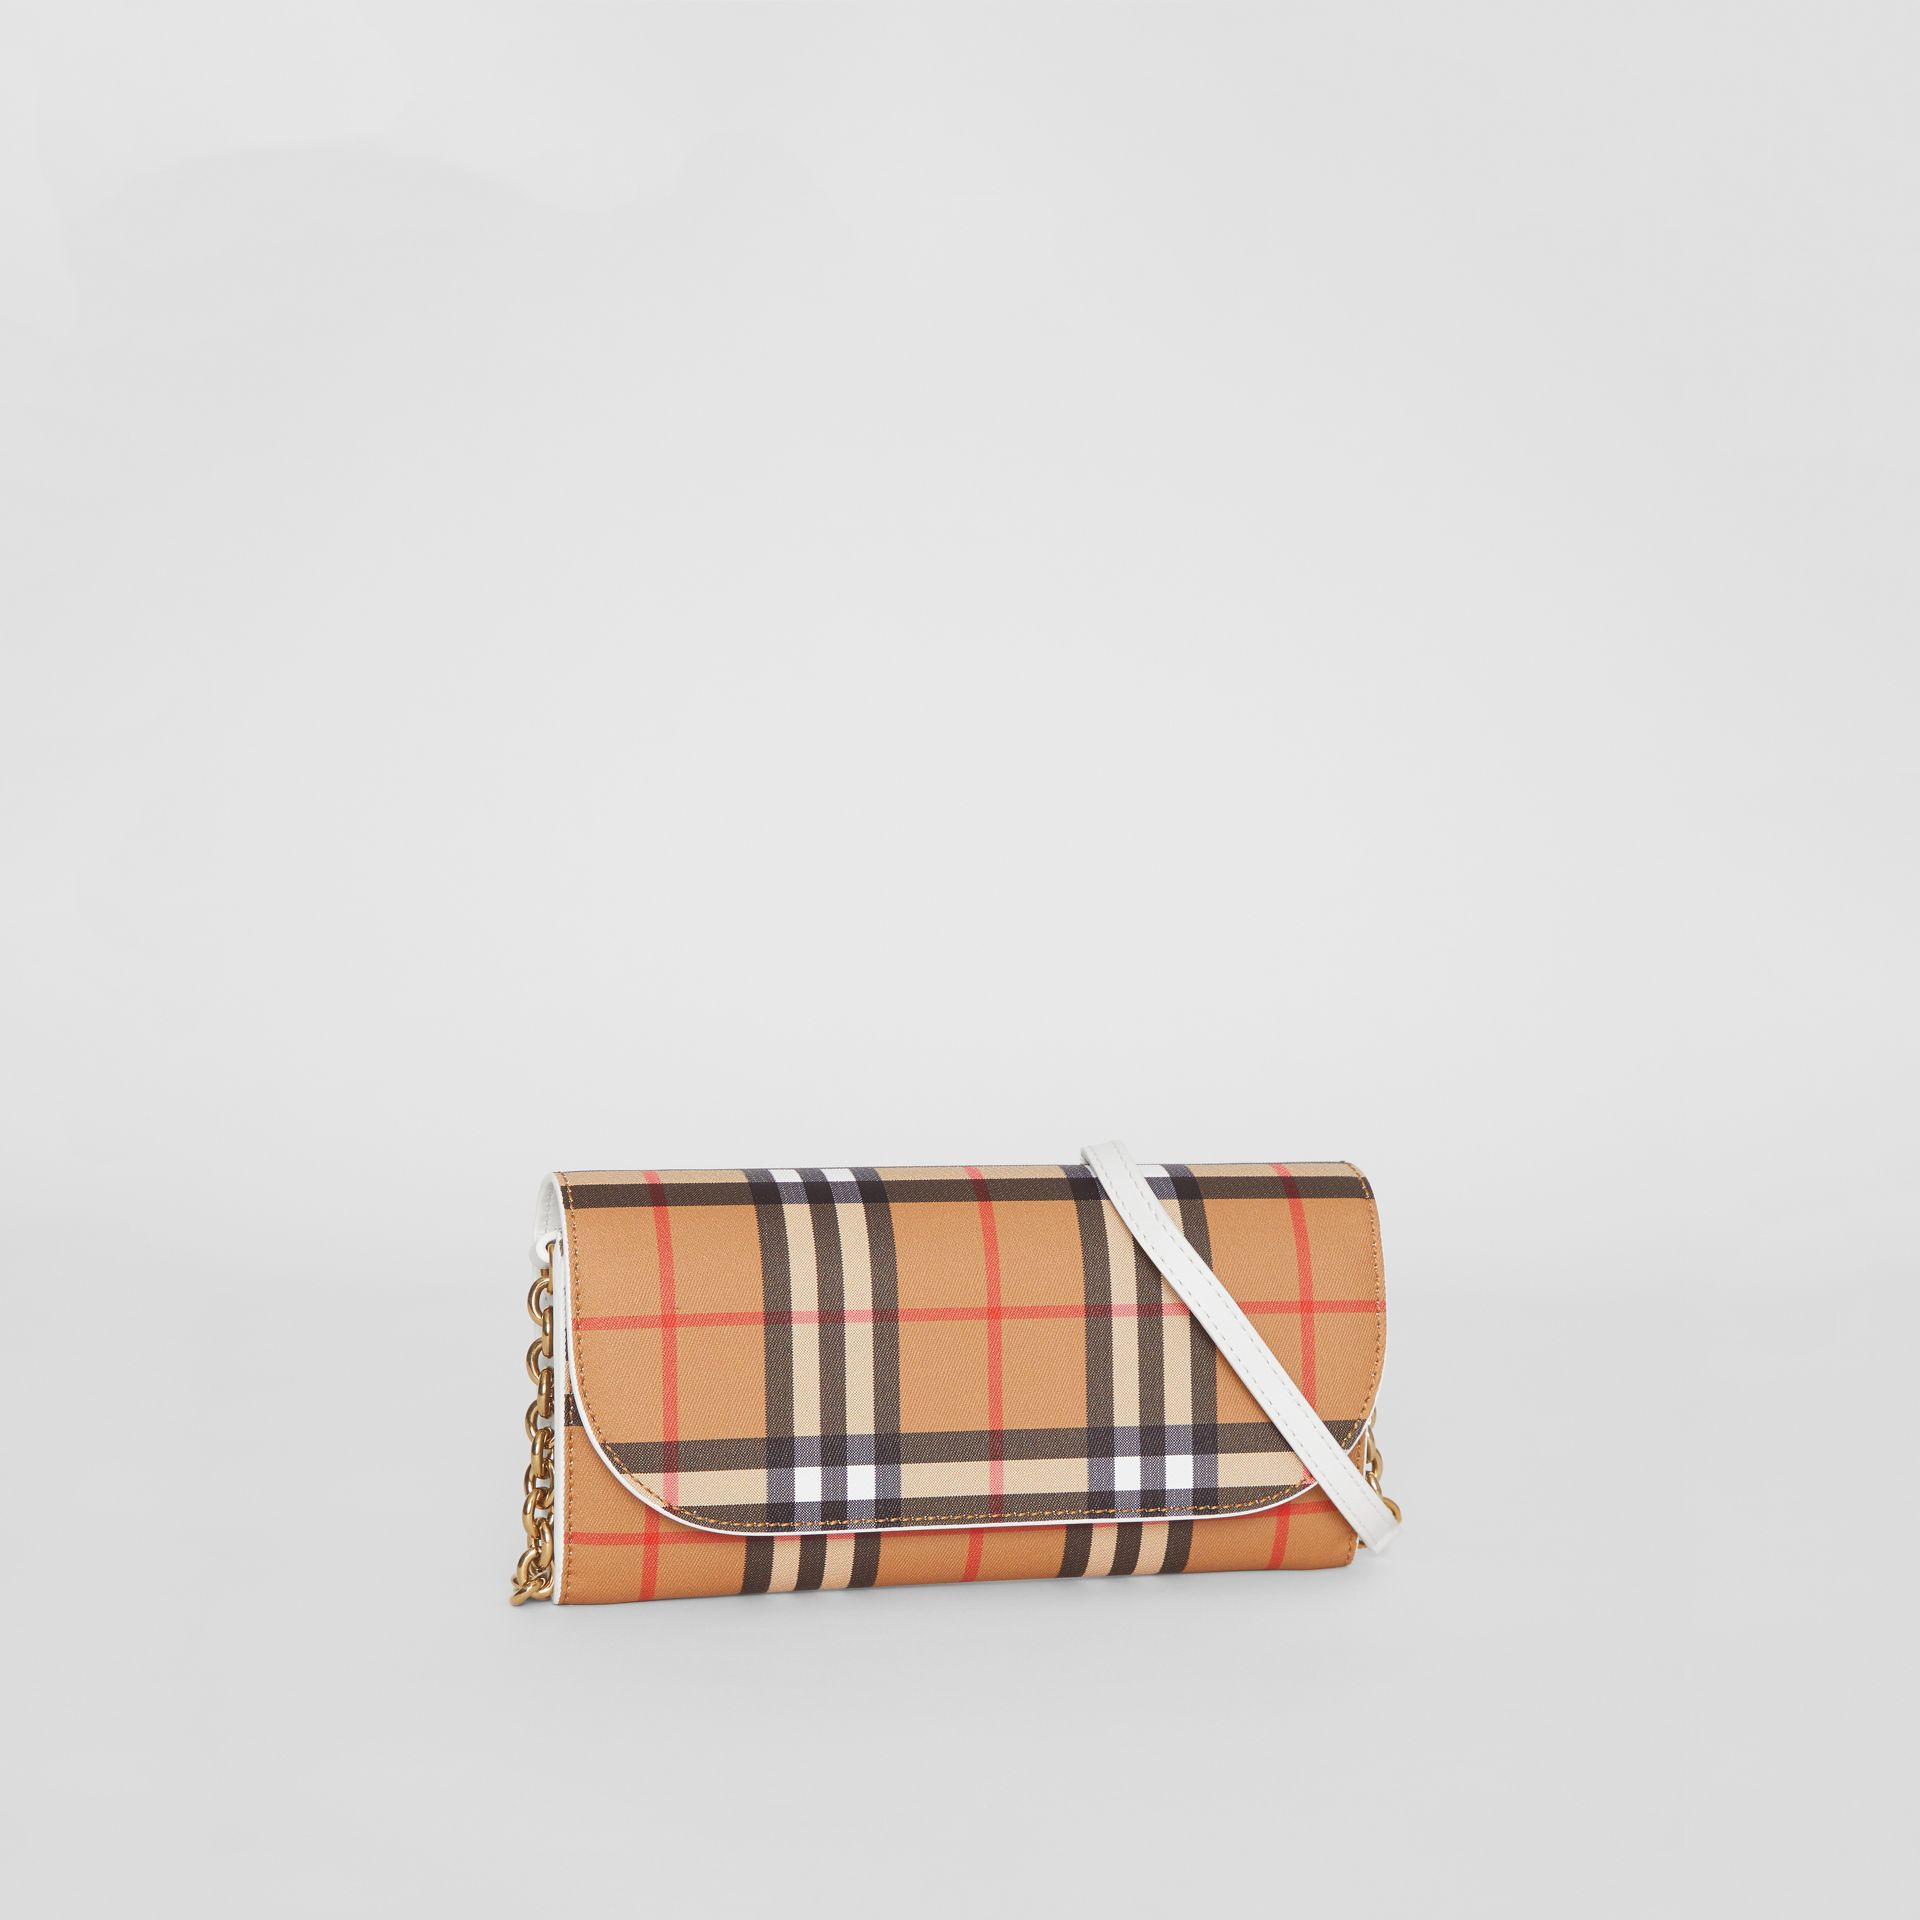 Vintage Check and Leather Wallet with Chain in Chalk White - Women | Burberry United Kingdom - gallery image 6